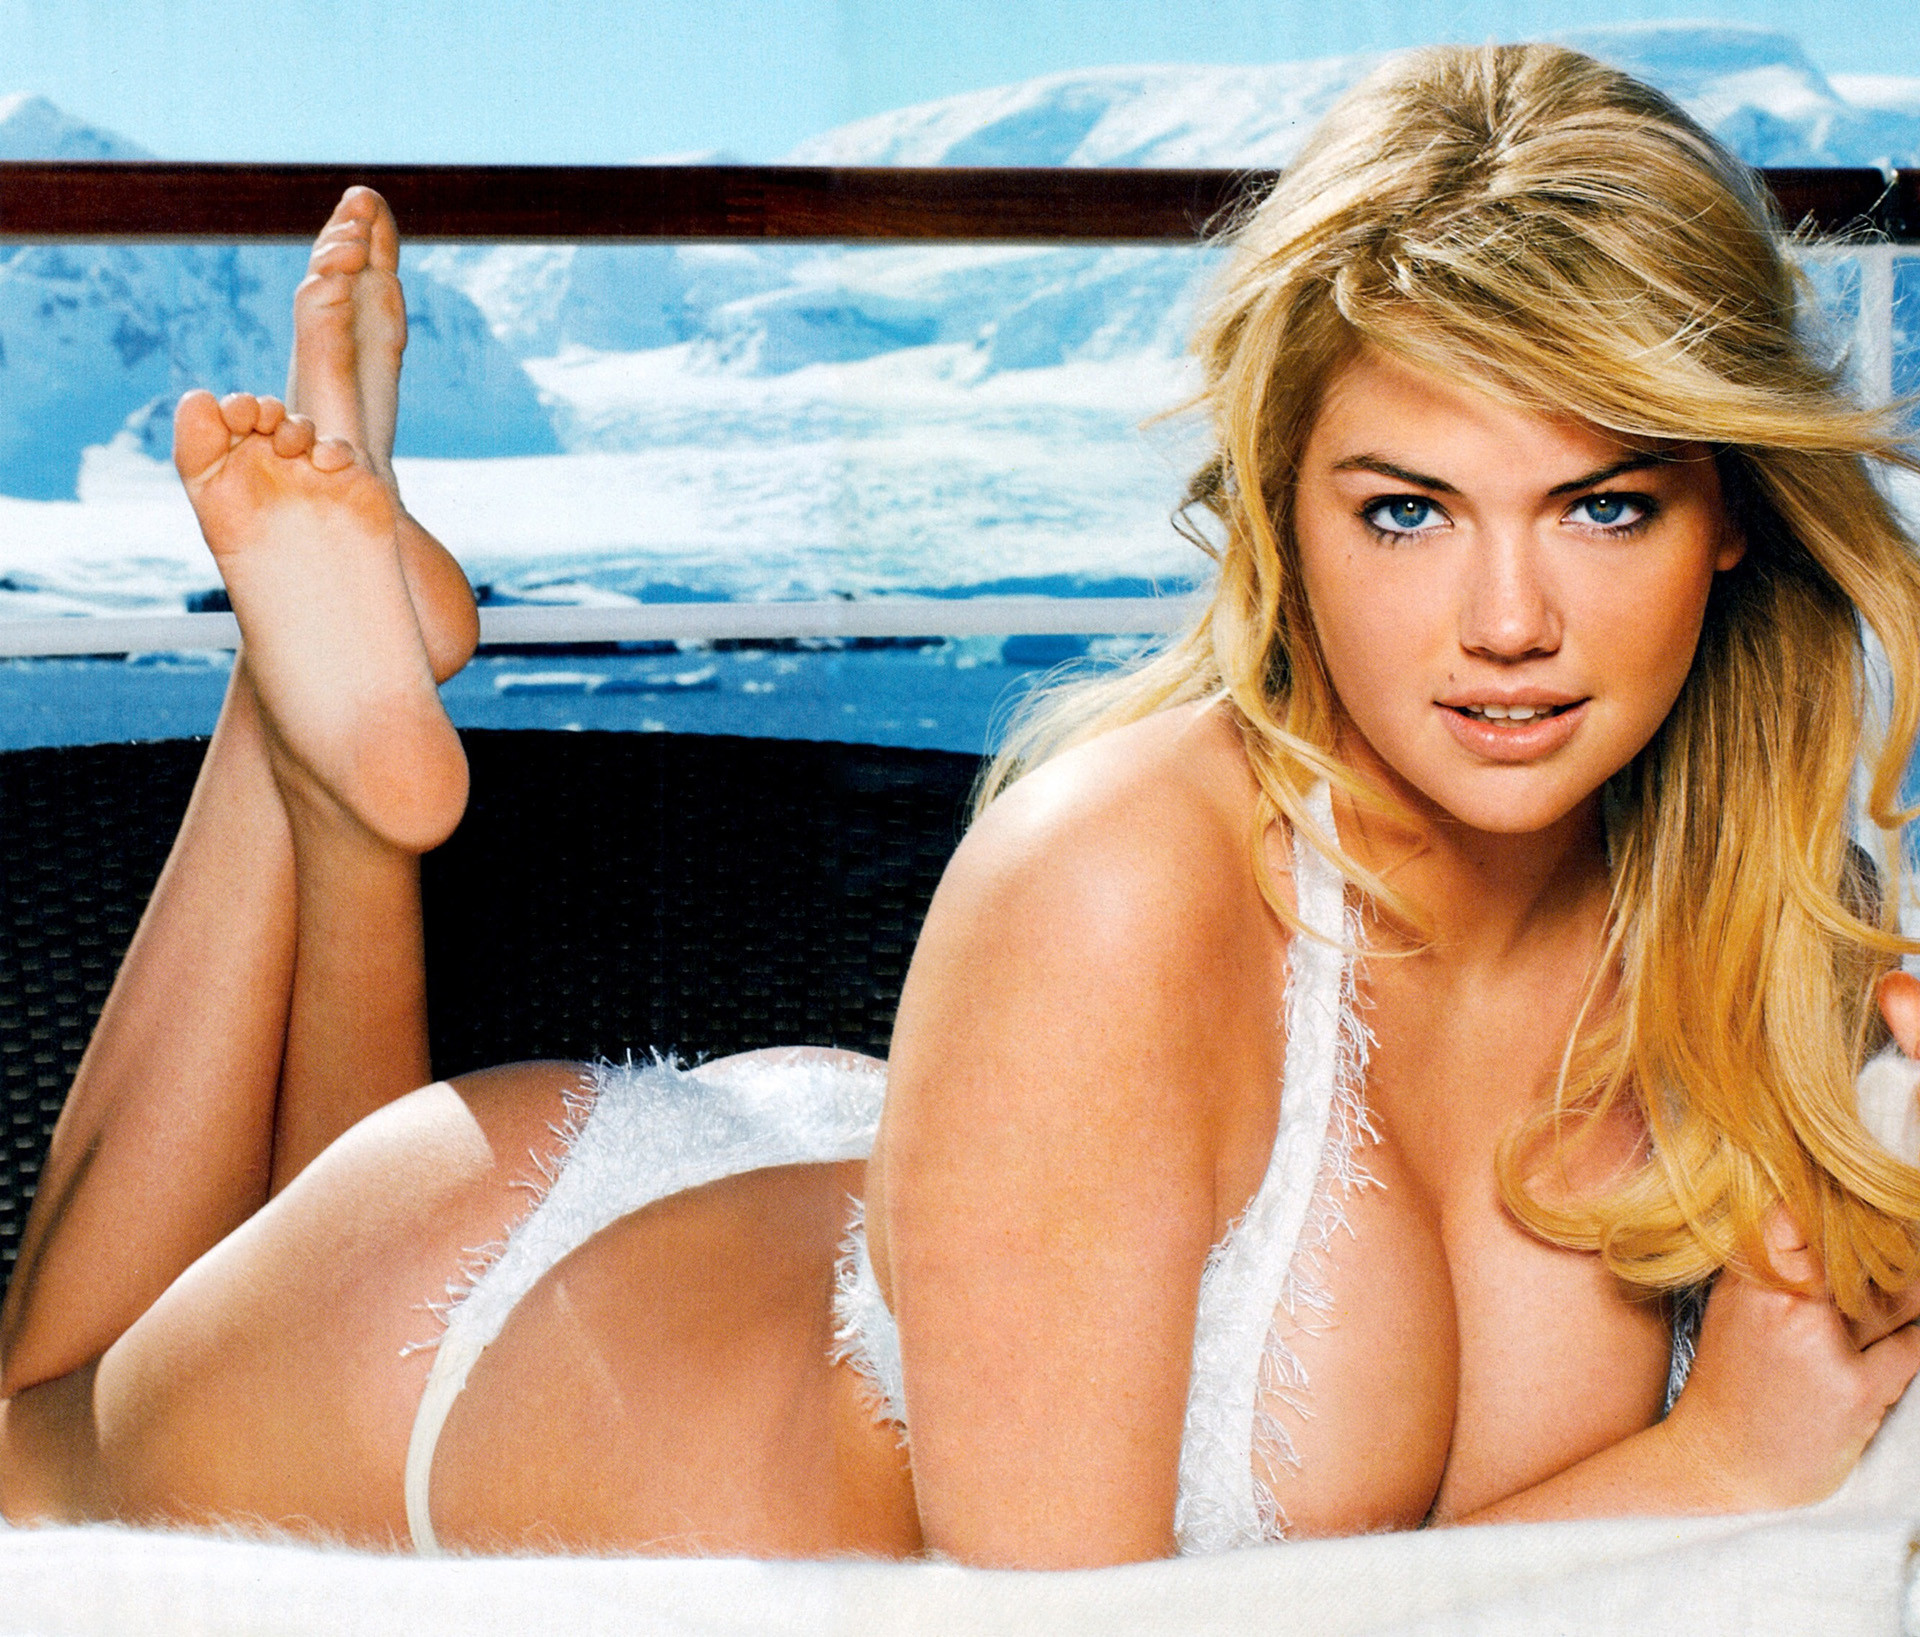 Kate Upton Gta 5 Posted By Michelle Thompson